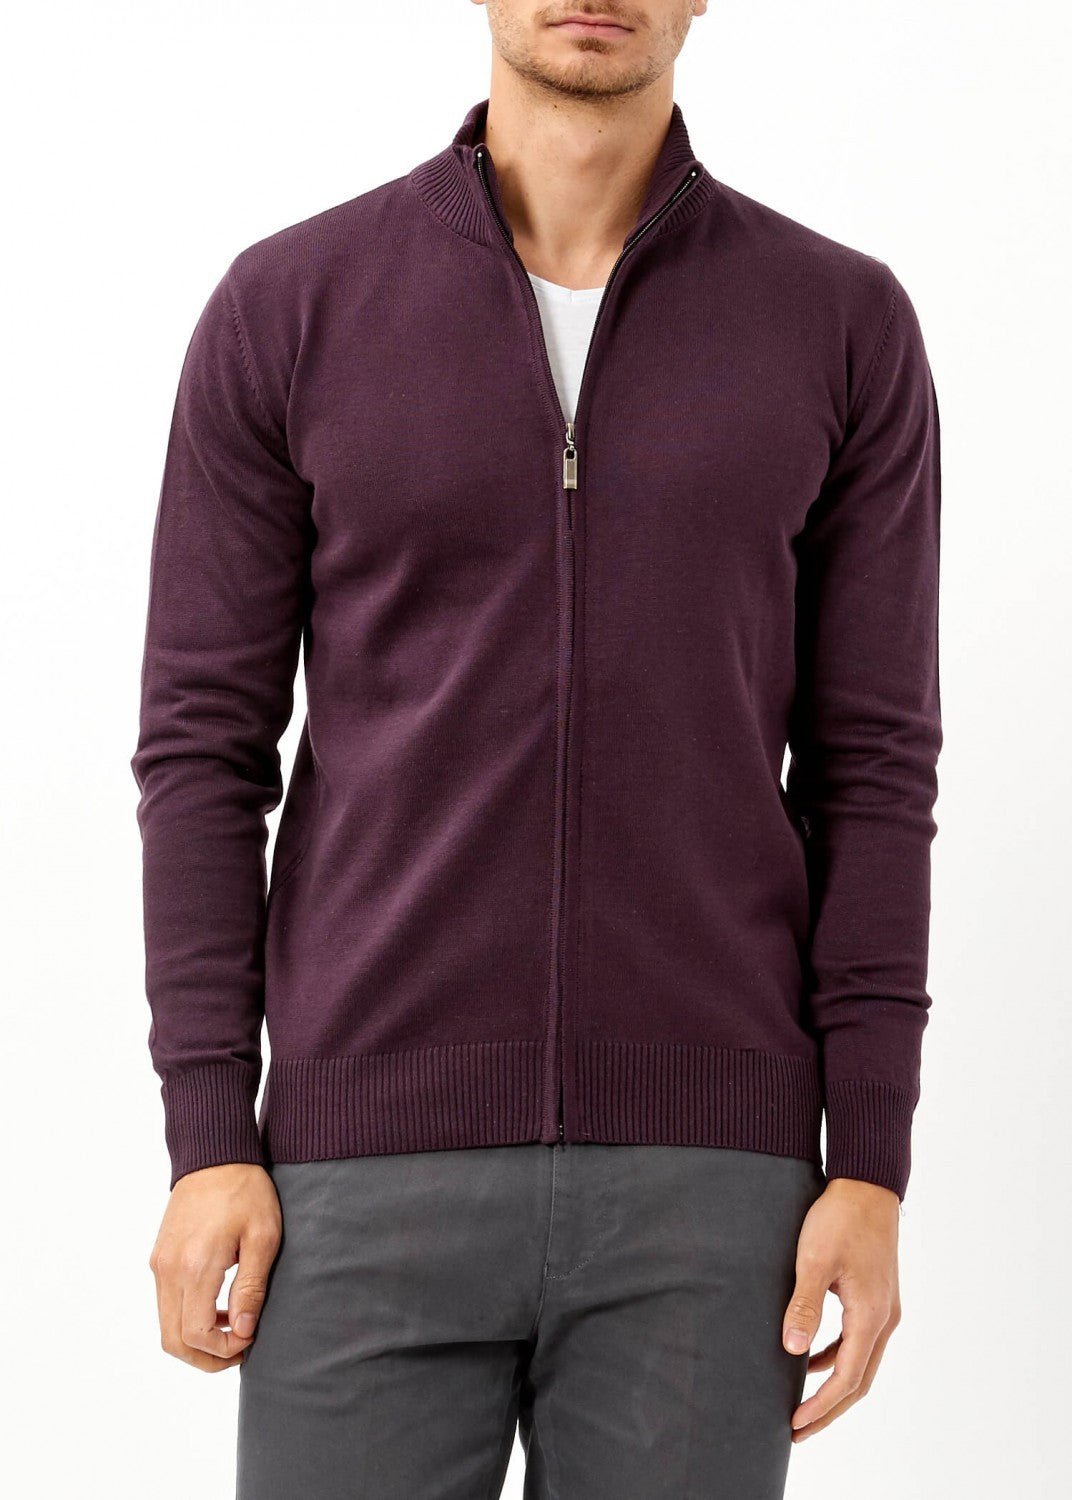 Men`s  Wool Basic Sweater - THE UNIQUE FIT